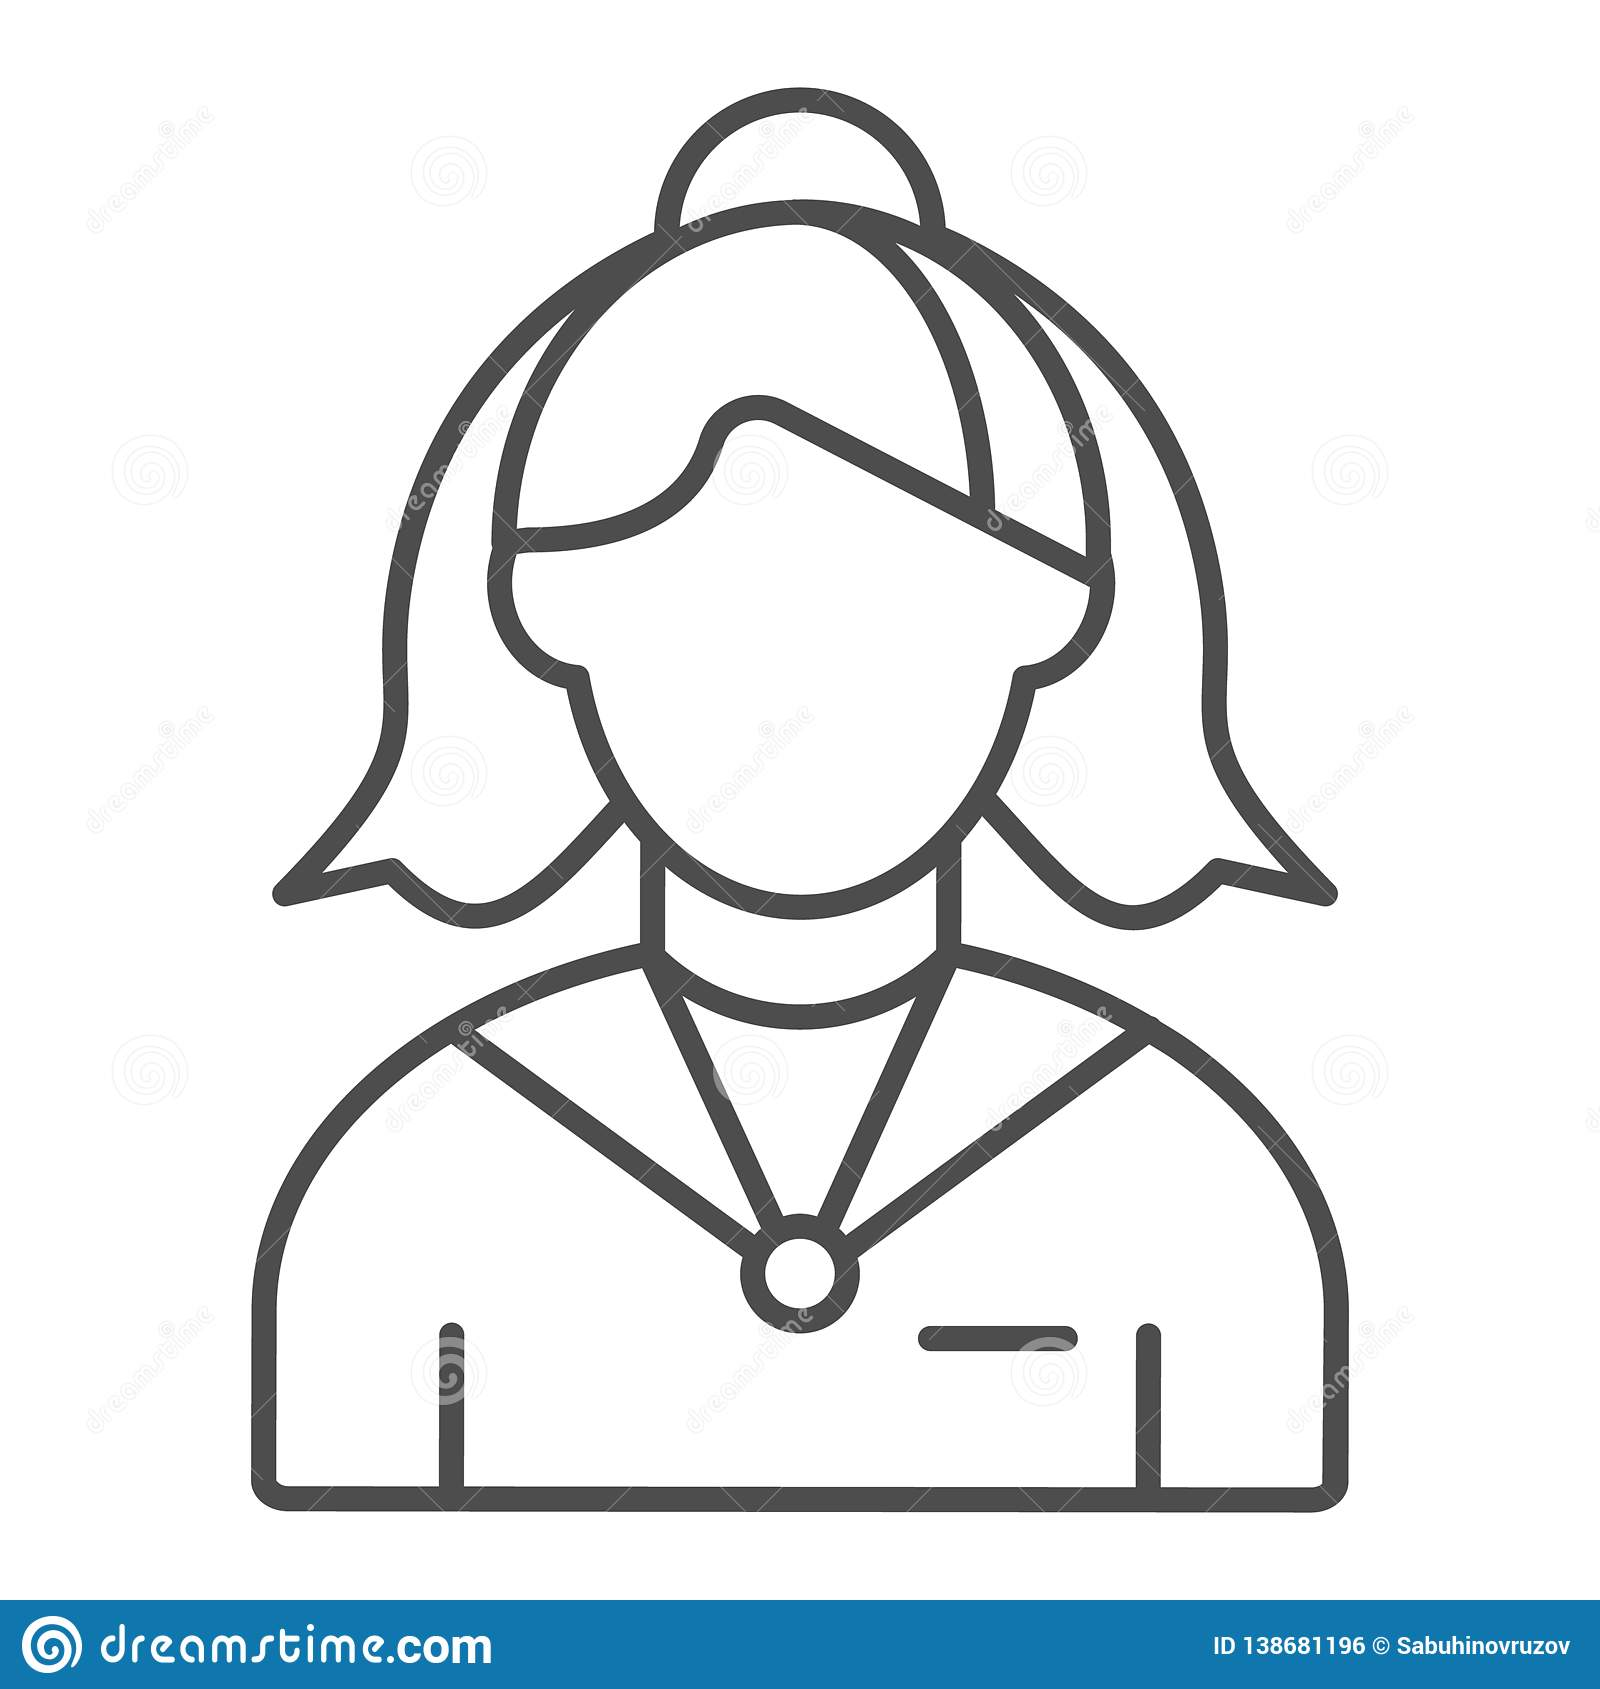 Female receptionist thin line icon. Administrator vector illustration isolated on white. Woman assistant outline style